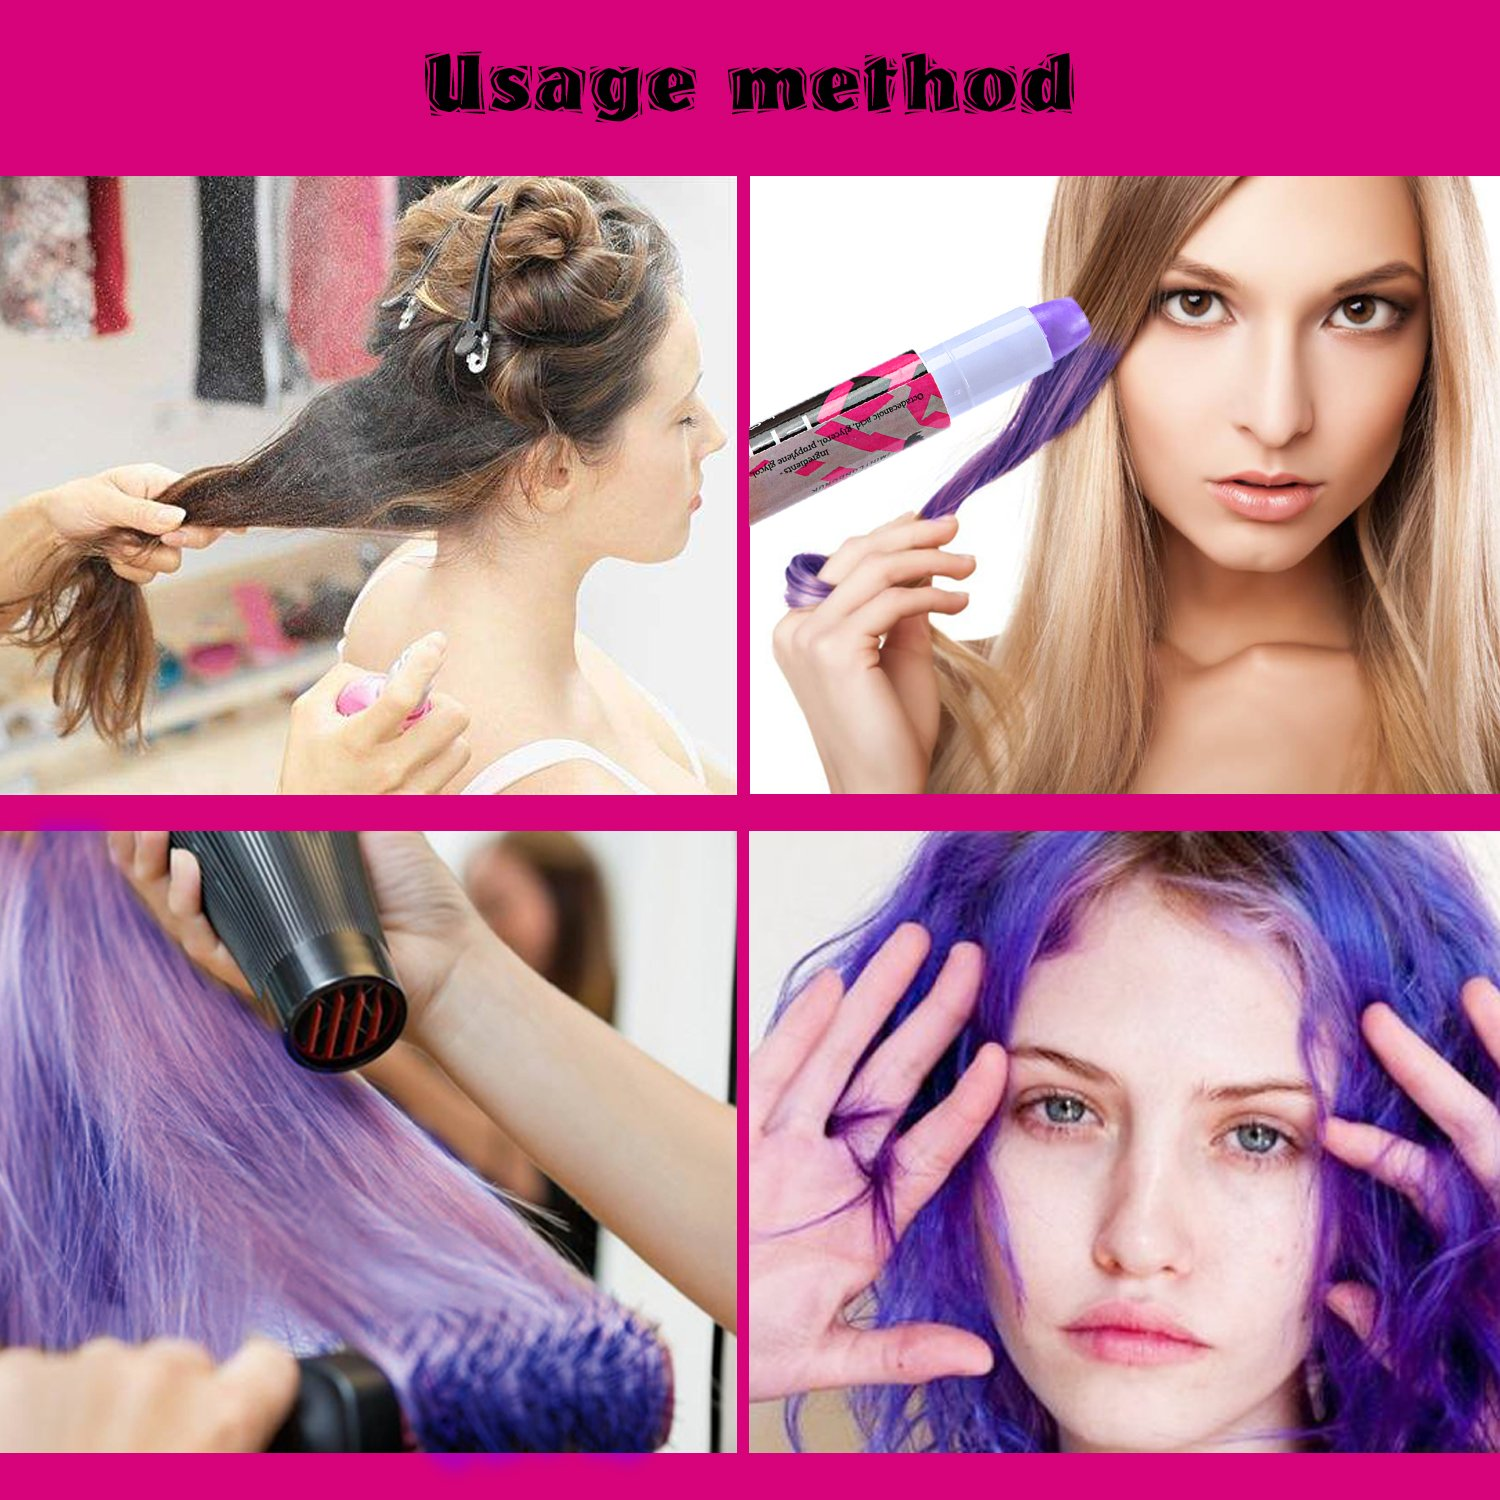 Hair Chalk, XIAO MO GU 6 Colourful Temporary Hair Color for Children & Adults, Perfect for Fancy Dress, Hair Dyeing Party and Cosplay DIY,Works on All Hair Colors